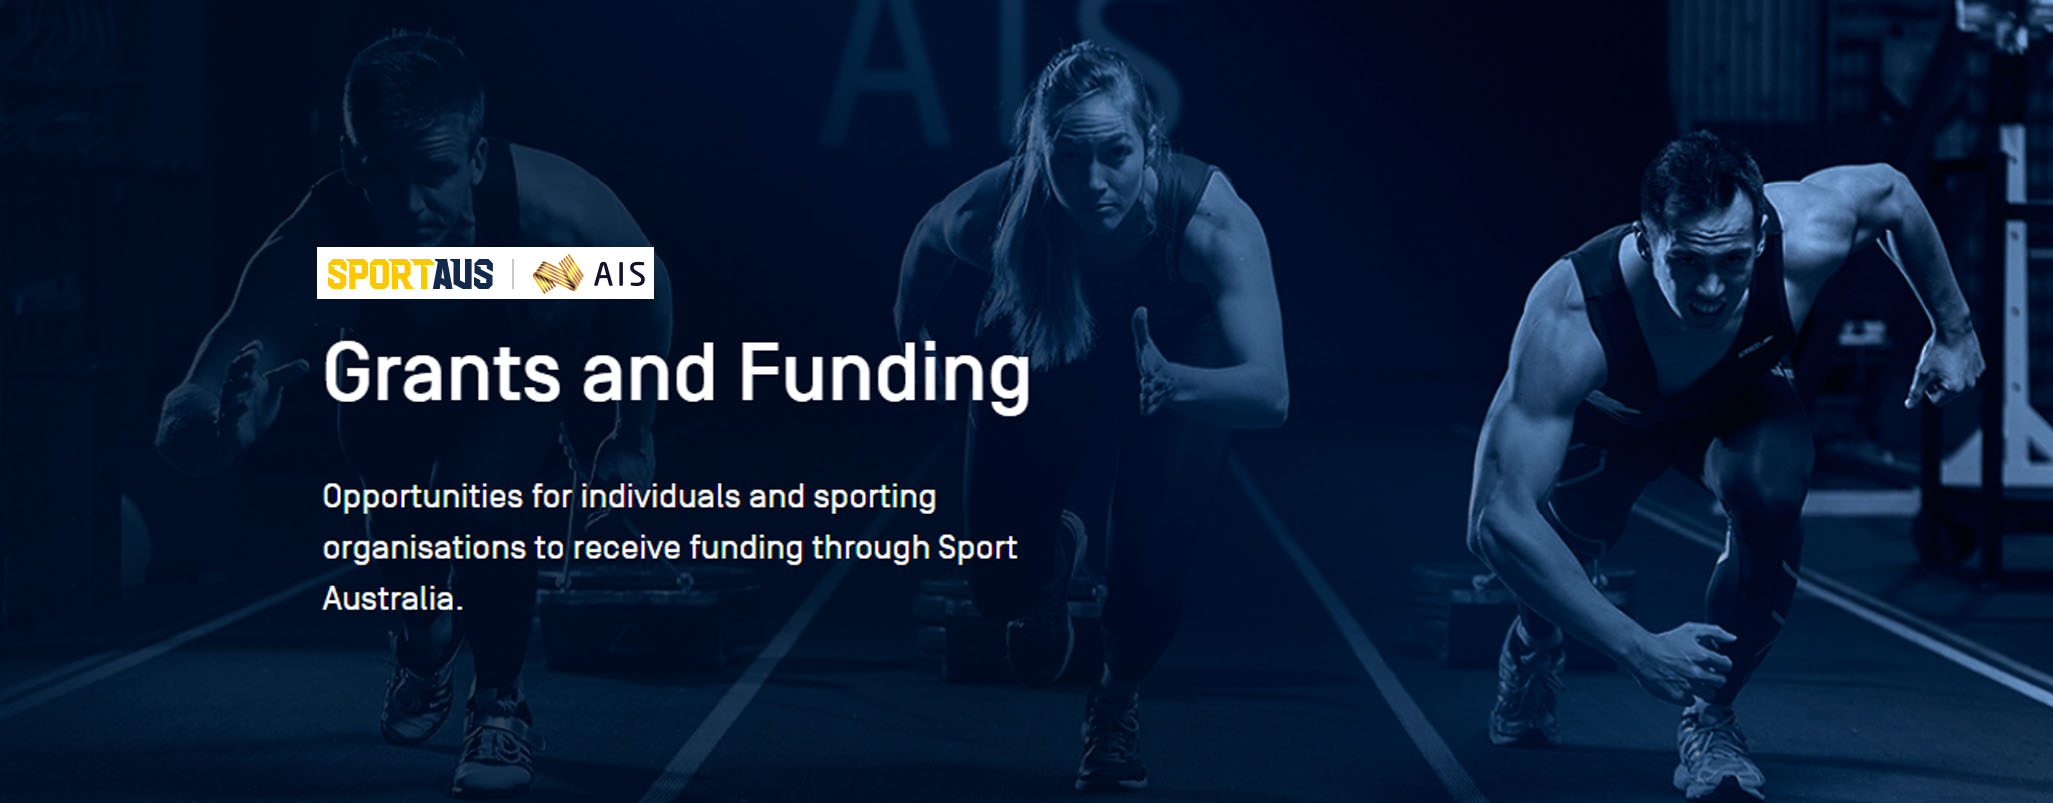 Sport Australia Graphic. 3 athletes running towards camera. text reads grants and funding